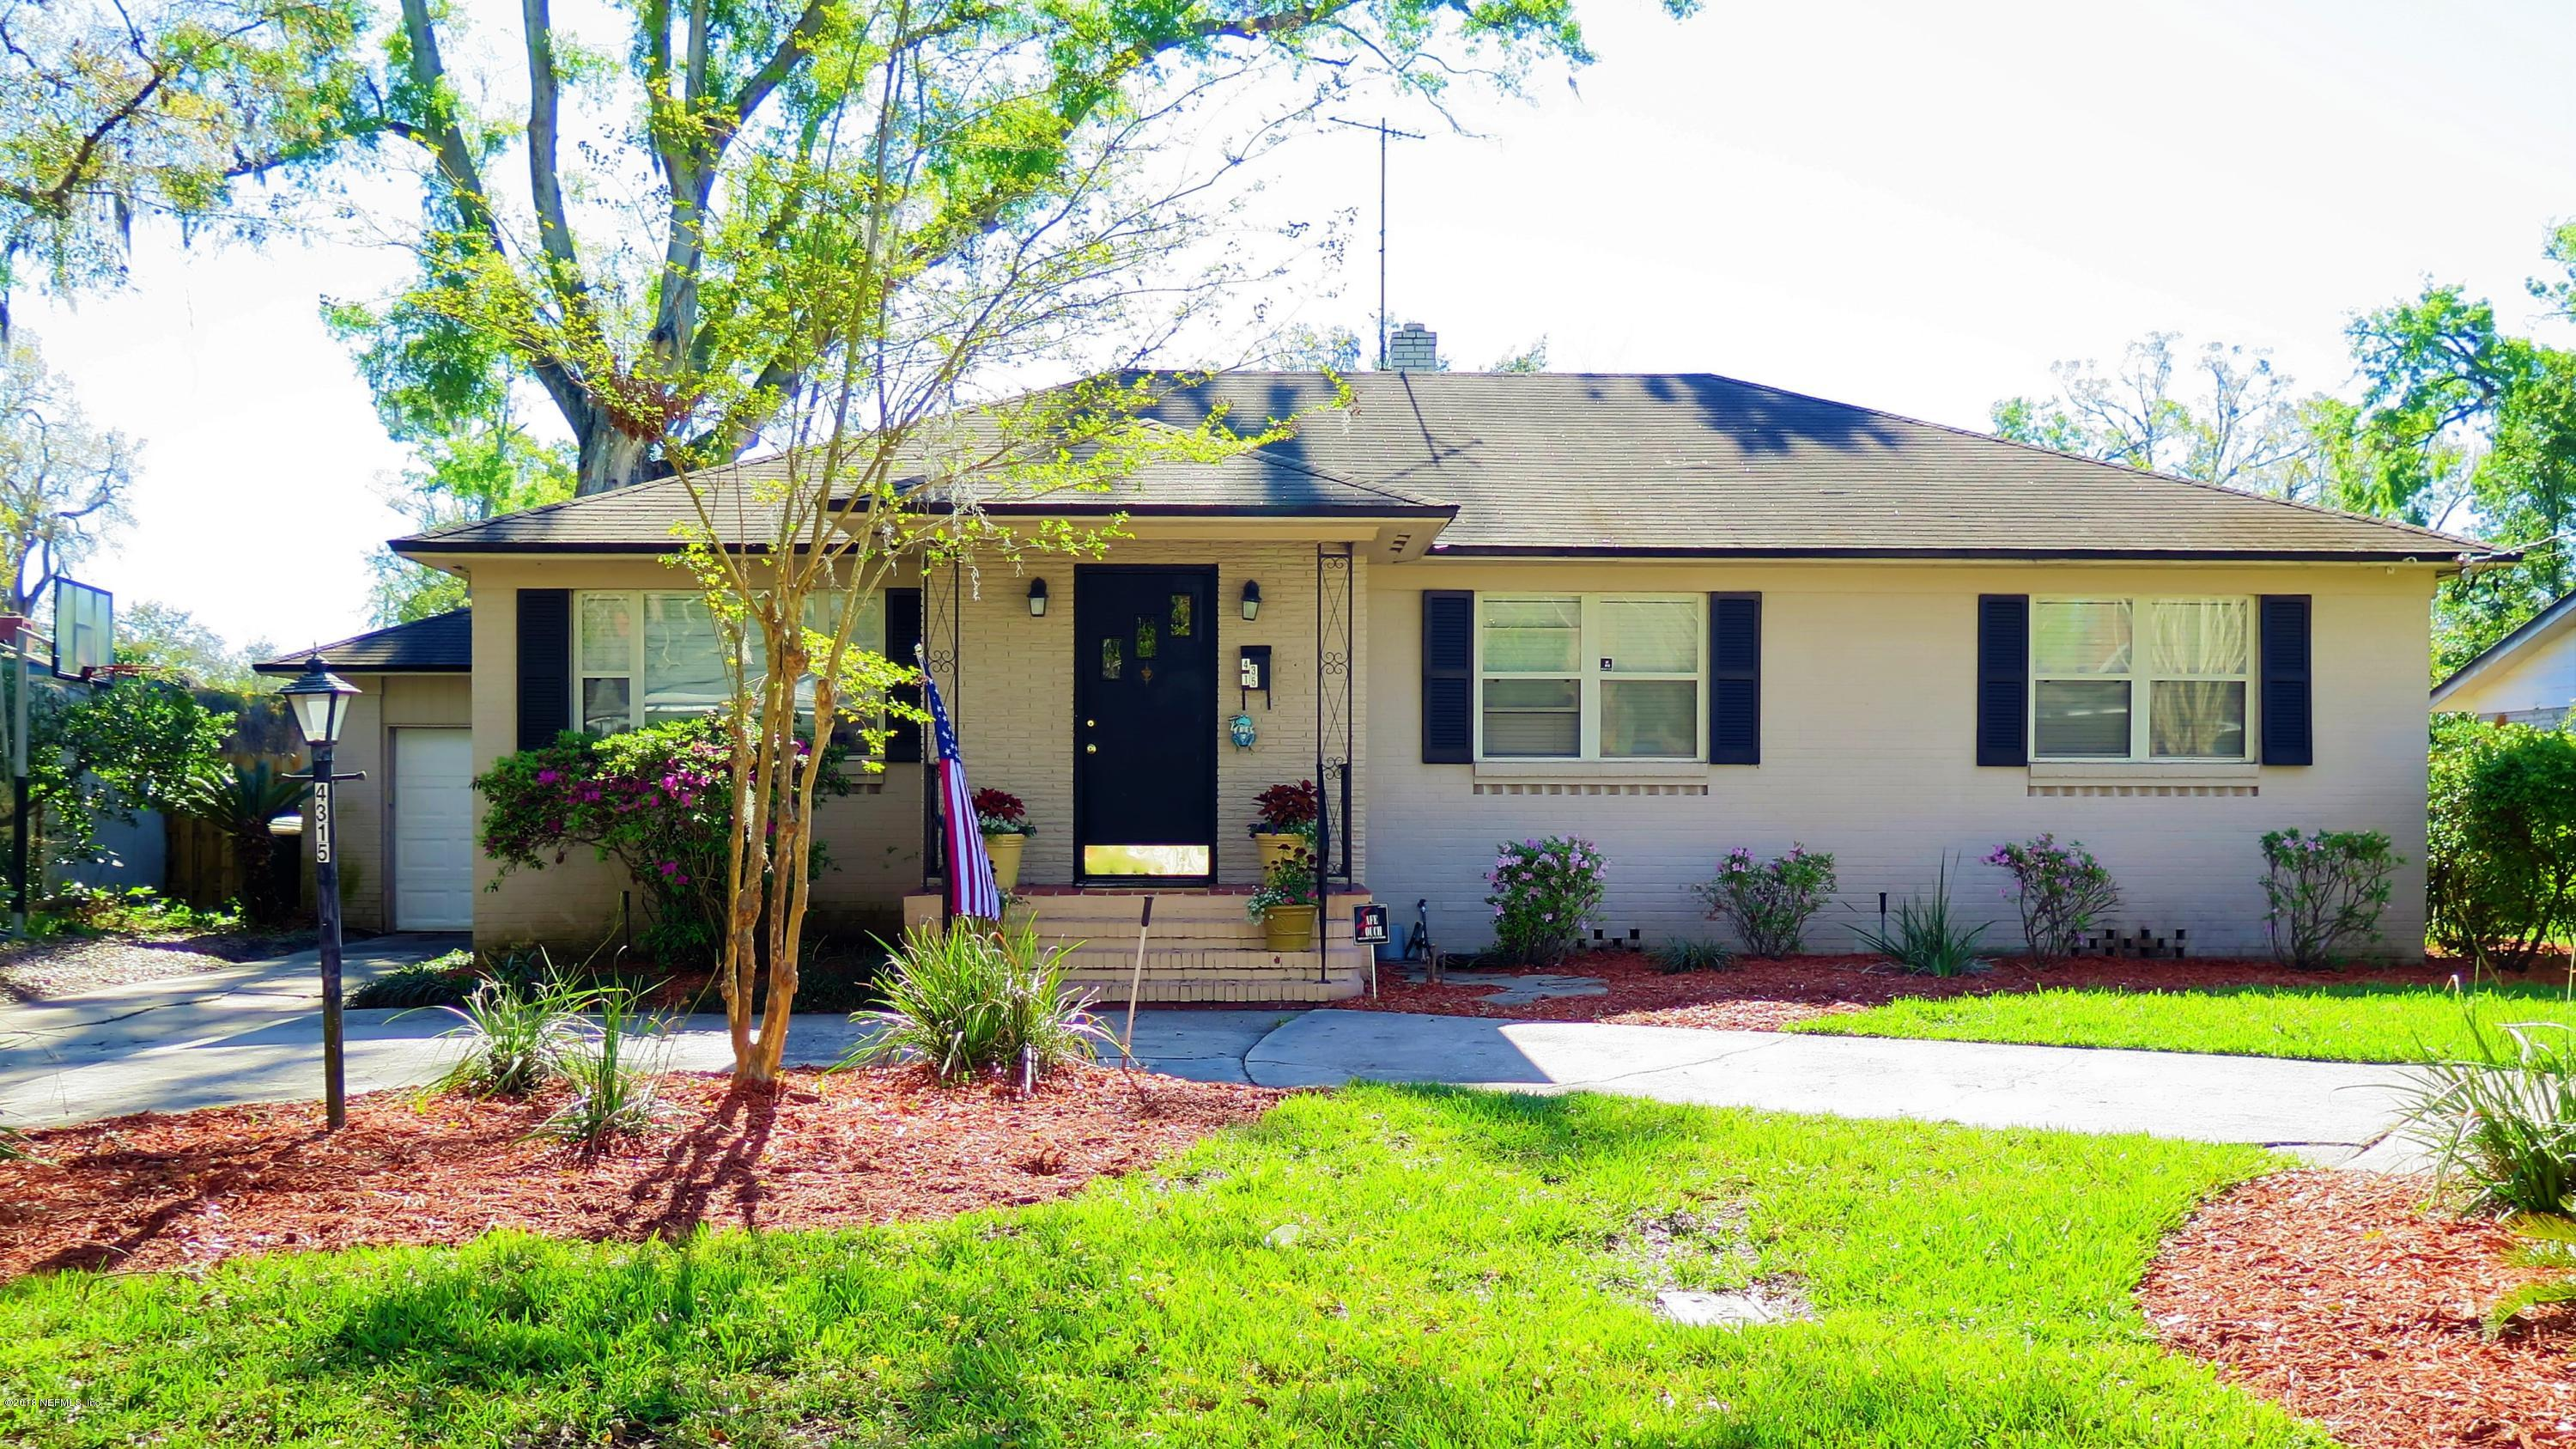 4315 WORTH, JACKSONVILLE, FLORIDA 32207, 4 Bedrooms Bedrooms, ,2 BathroomsBathrooms,Residential - single family,For sale,WORTH,924442